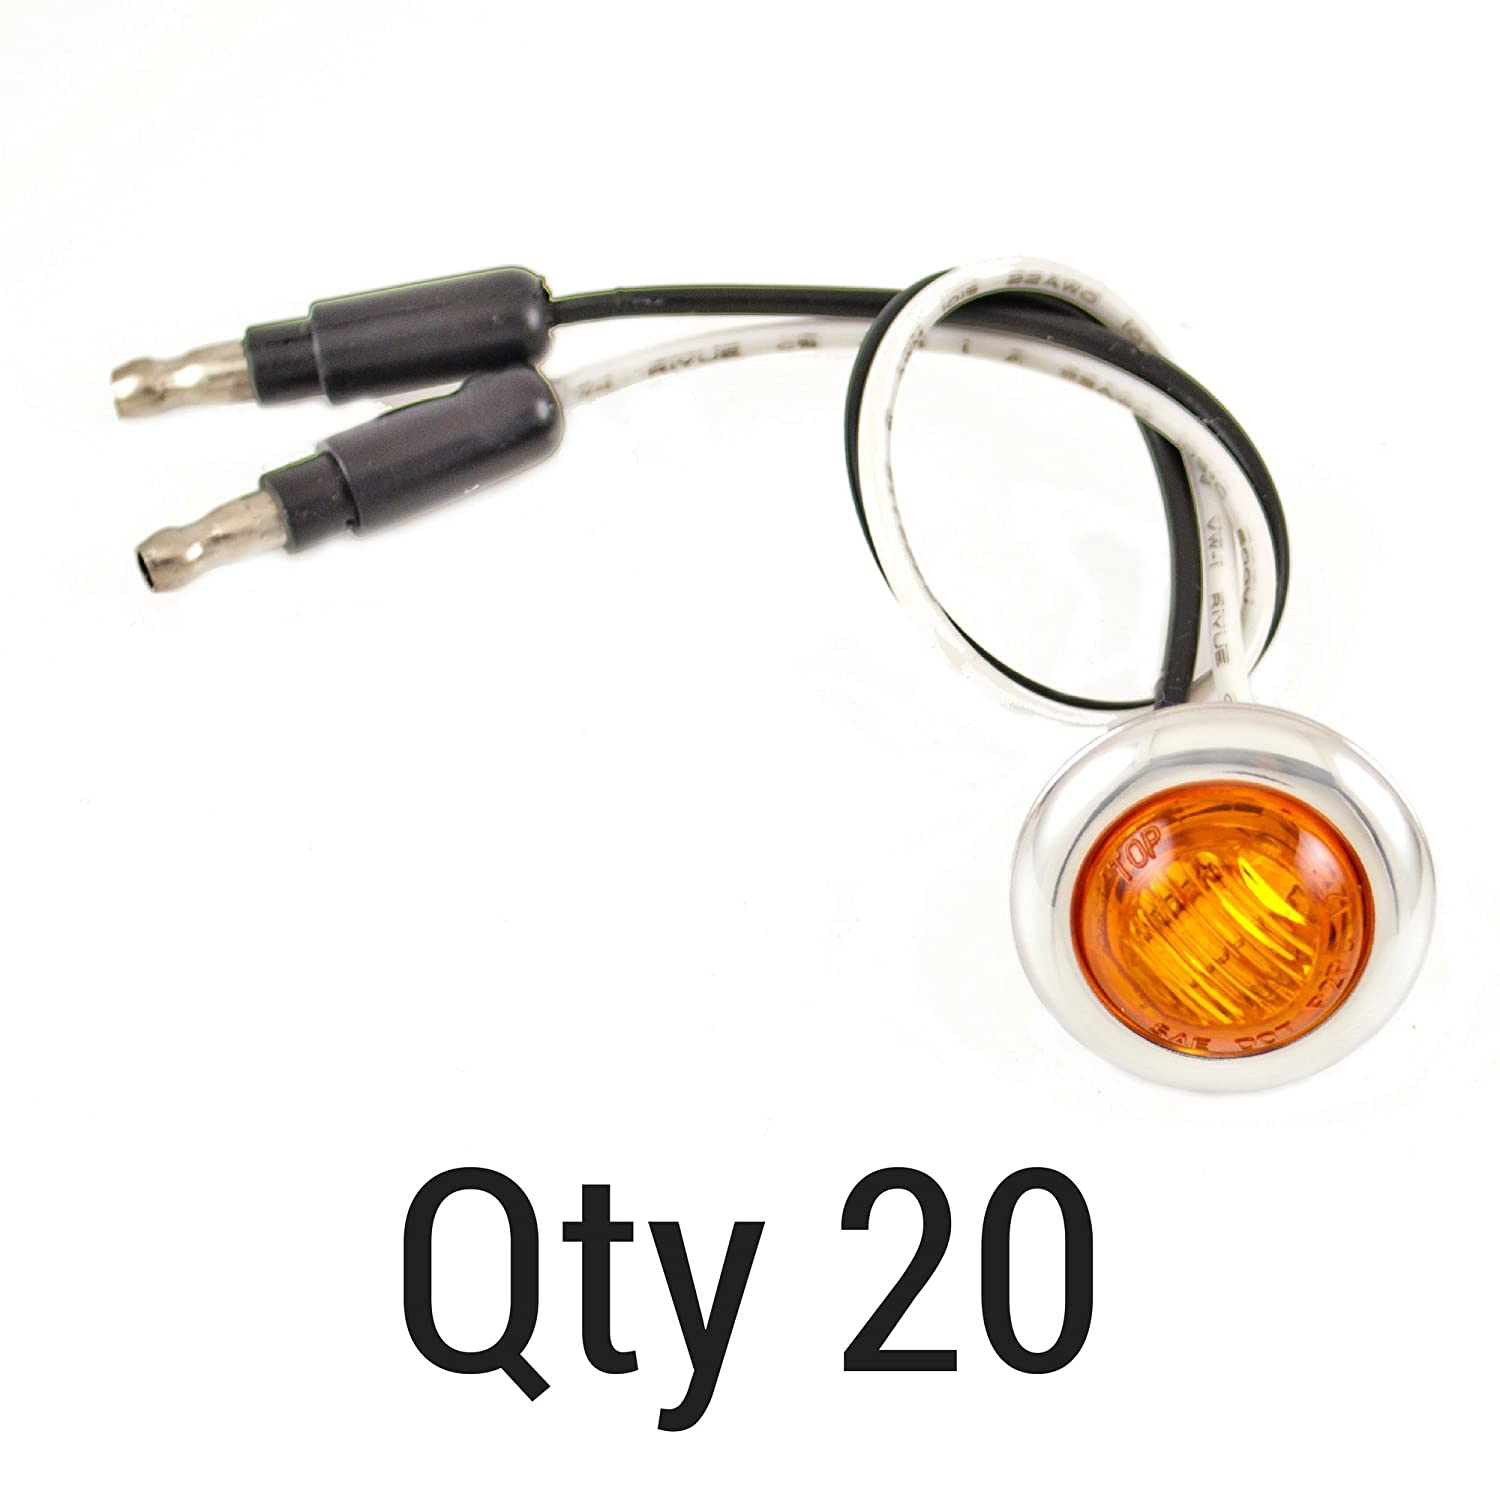 Qty 20-3//4 AMBER 3 LED CLEARANCE SIDE MARKER BULLET LIGHTS CHROME RING TRAILER